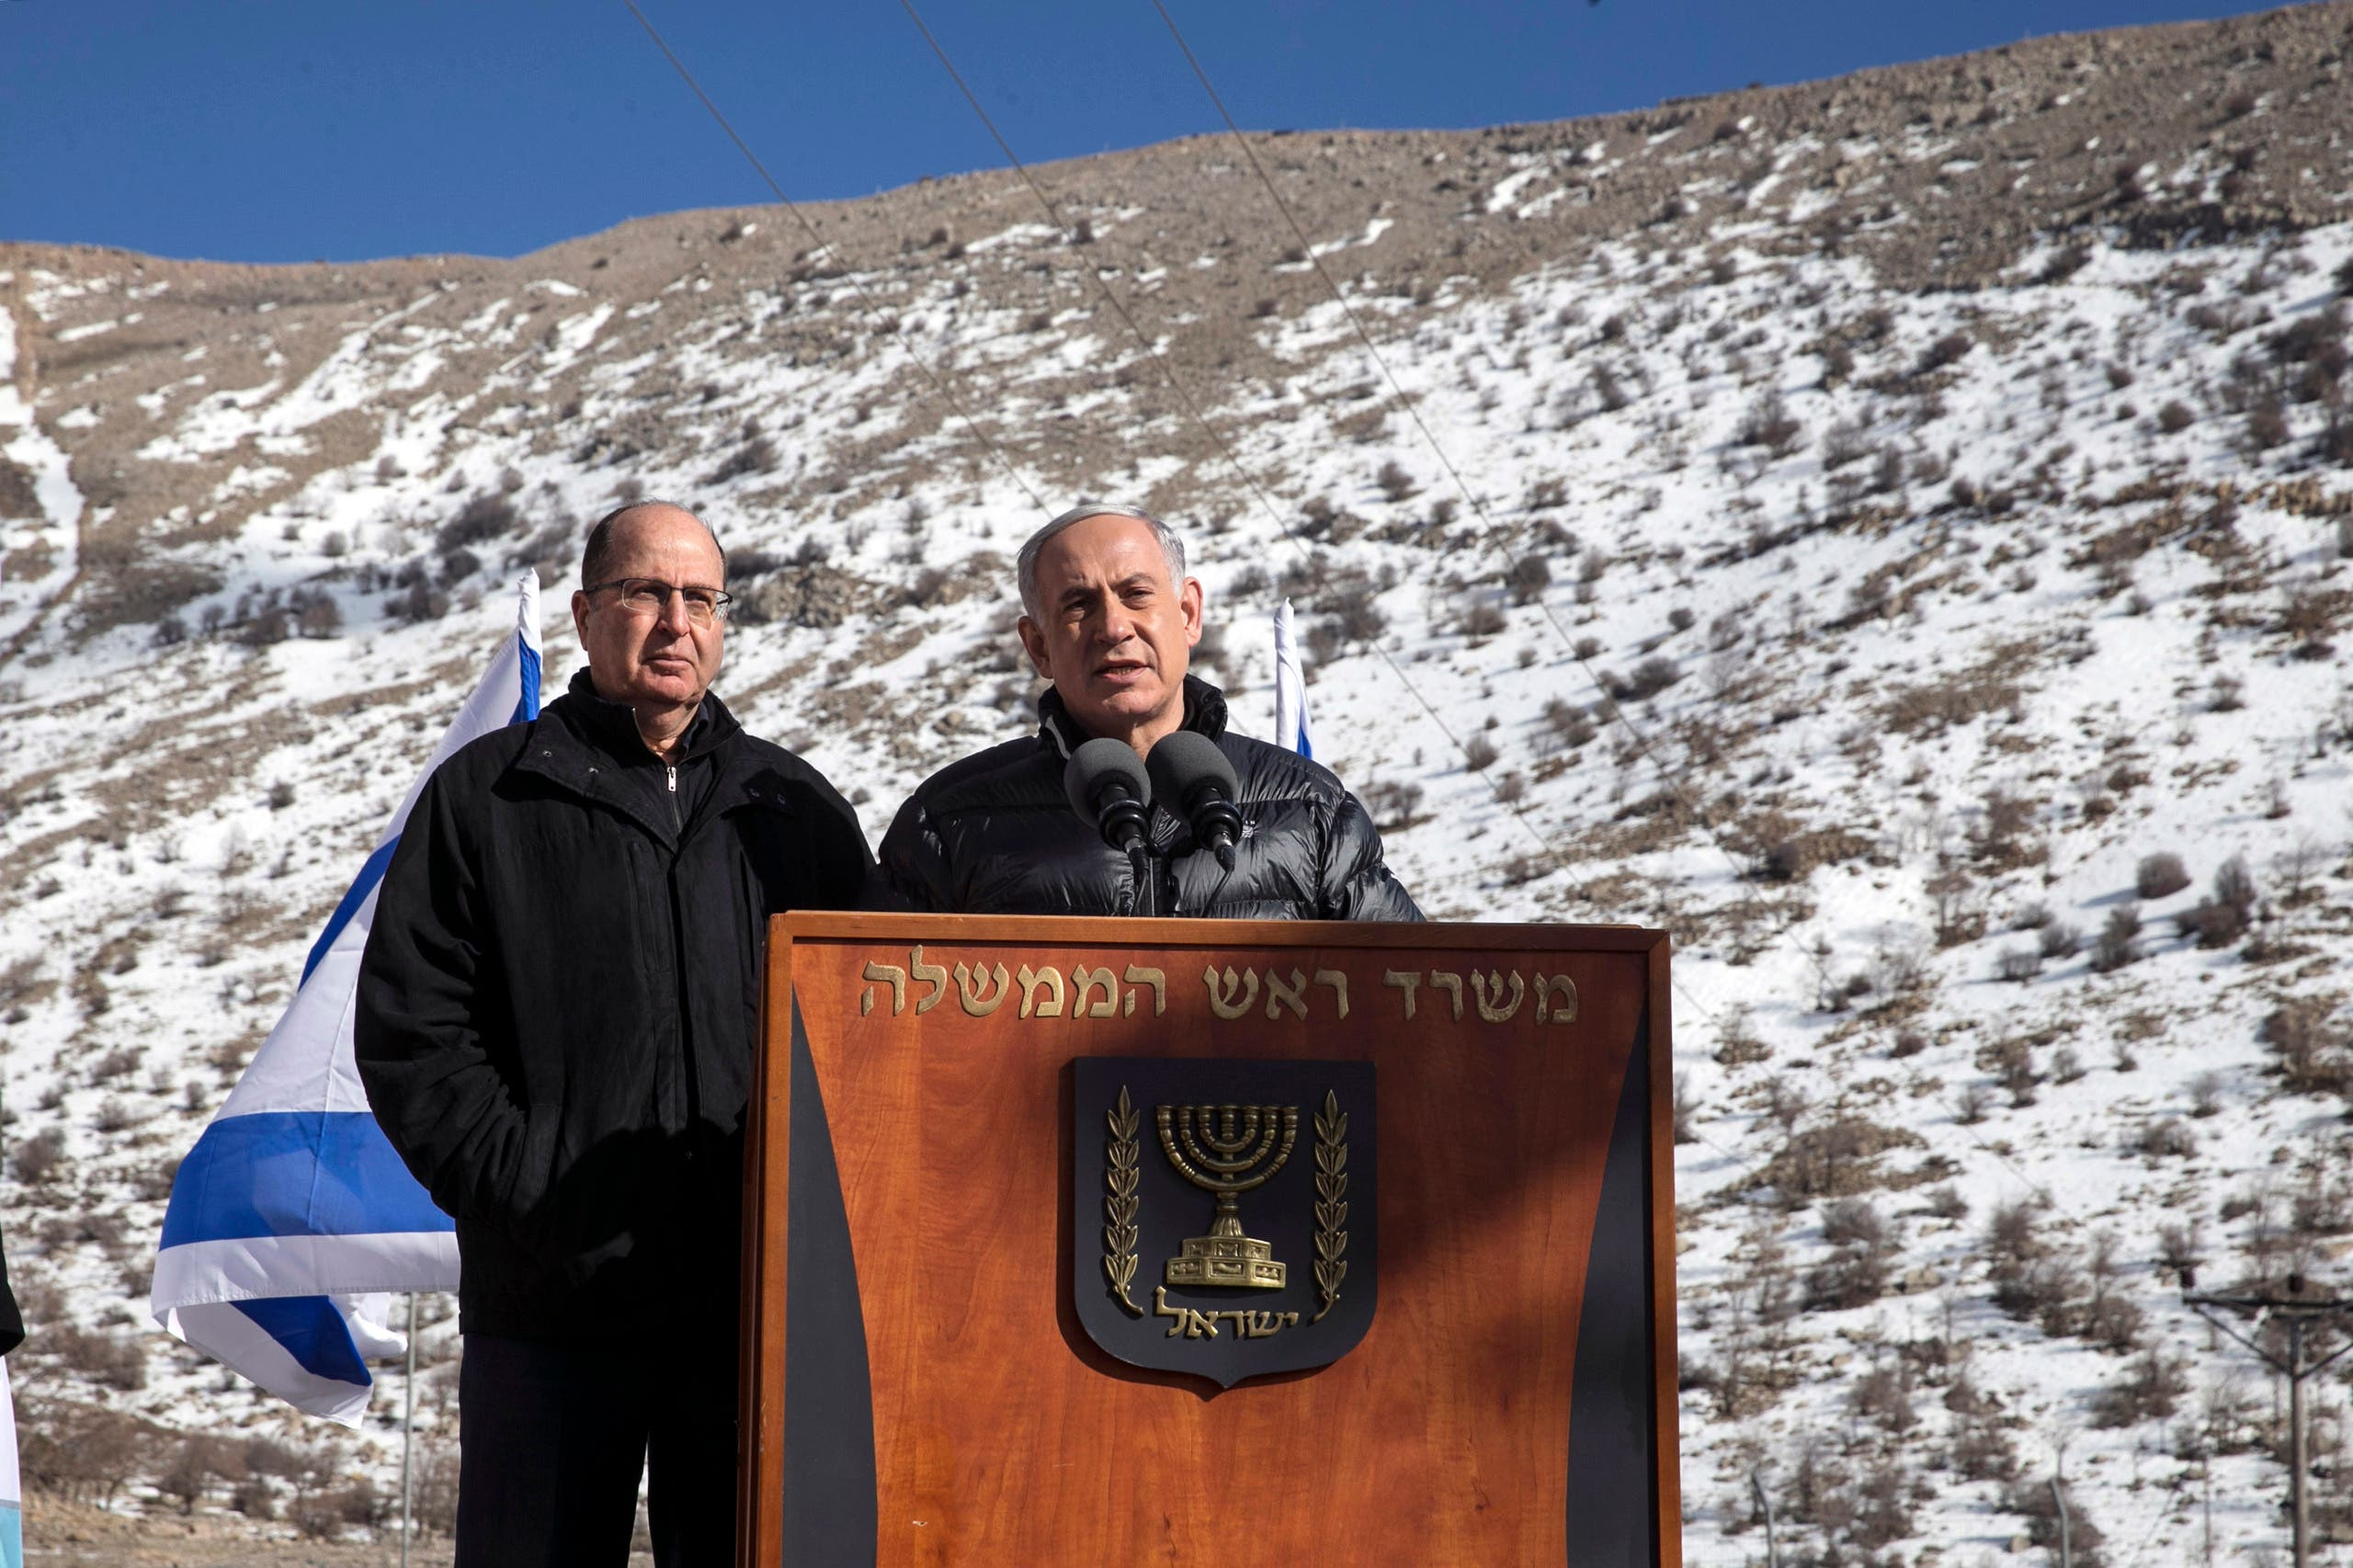 Israel's Prime Minister Benjamin Netanyahu (R) speaks next to Defence Minister Moshe Yaalon during a visit to Mount Hermon in the Golan Heights near the Israel-Syria border February 4, 2015. (Reuters)